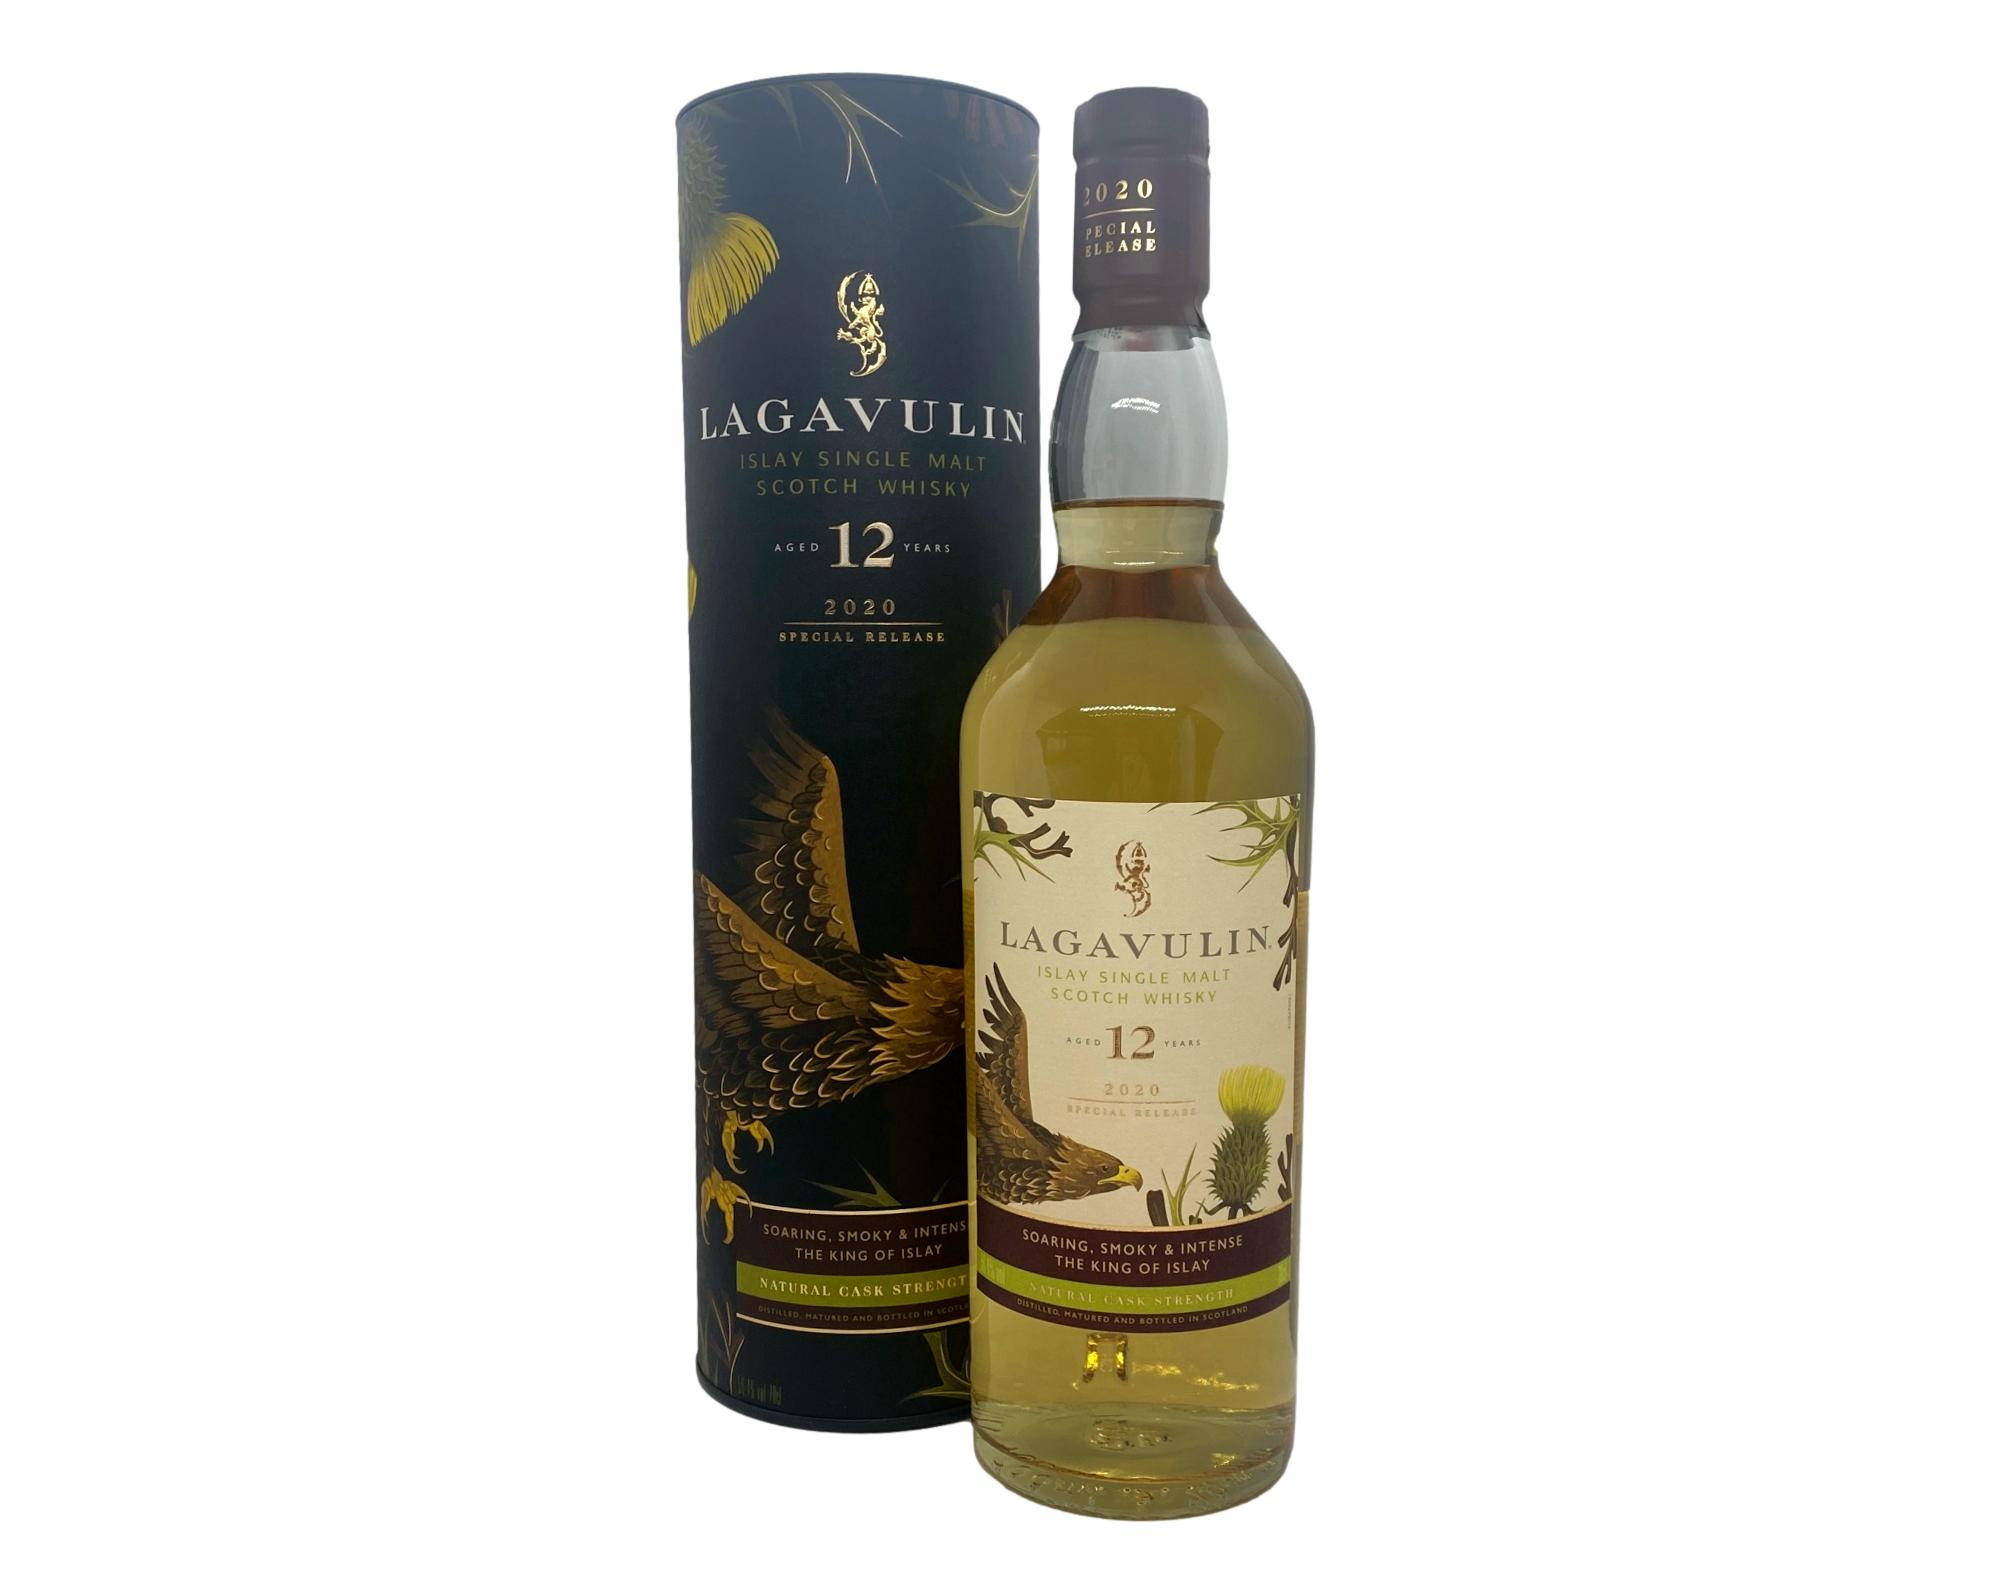 Lagavulin 12 Year Old (2020 Special Release) Natural Cask Strength 700ml @ 56.4% abv